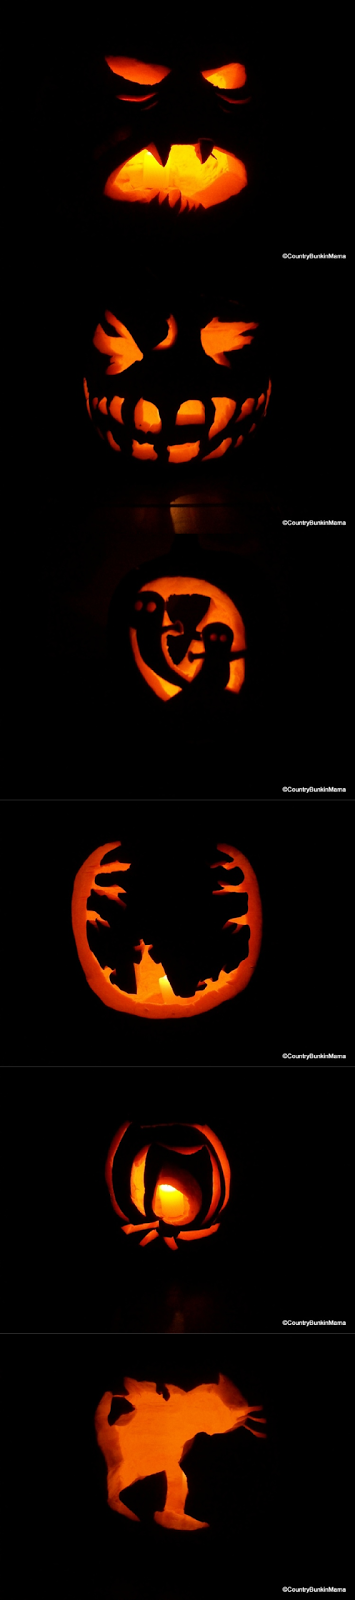 Jack-O-Lanterns carved from Bunkin Mama 's Punkins